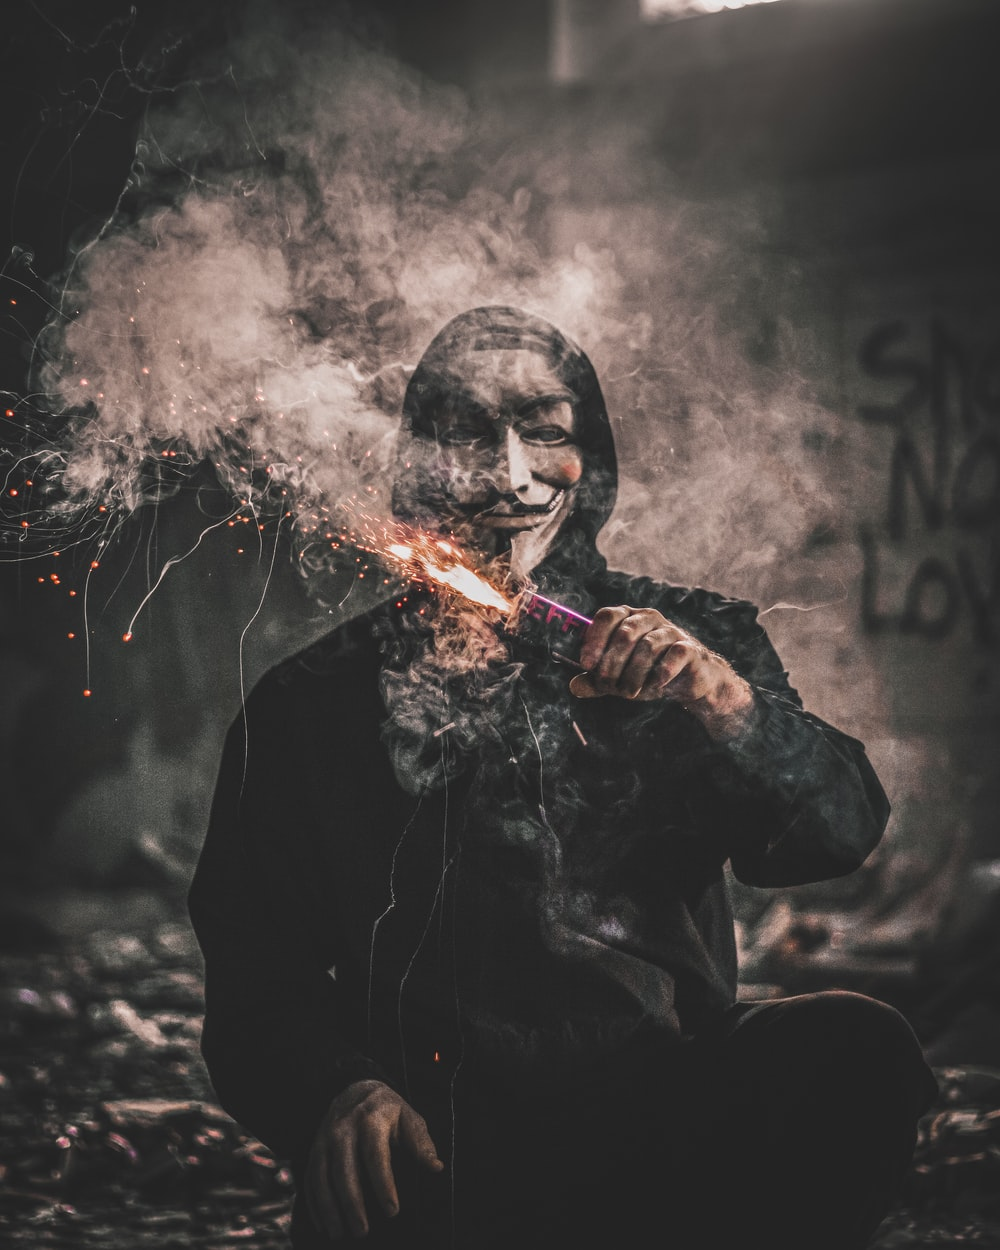 man holding sparkler wearing guy fawkes mask